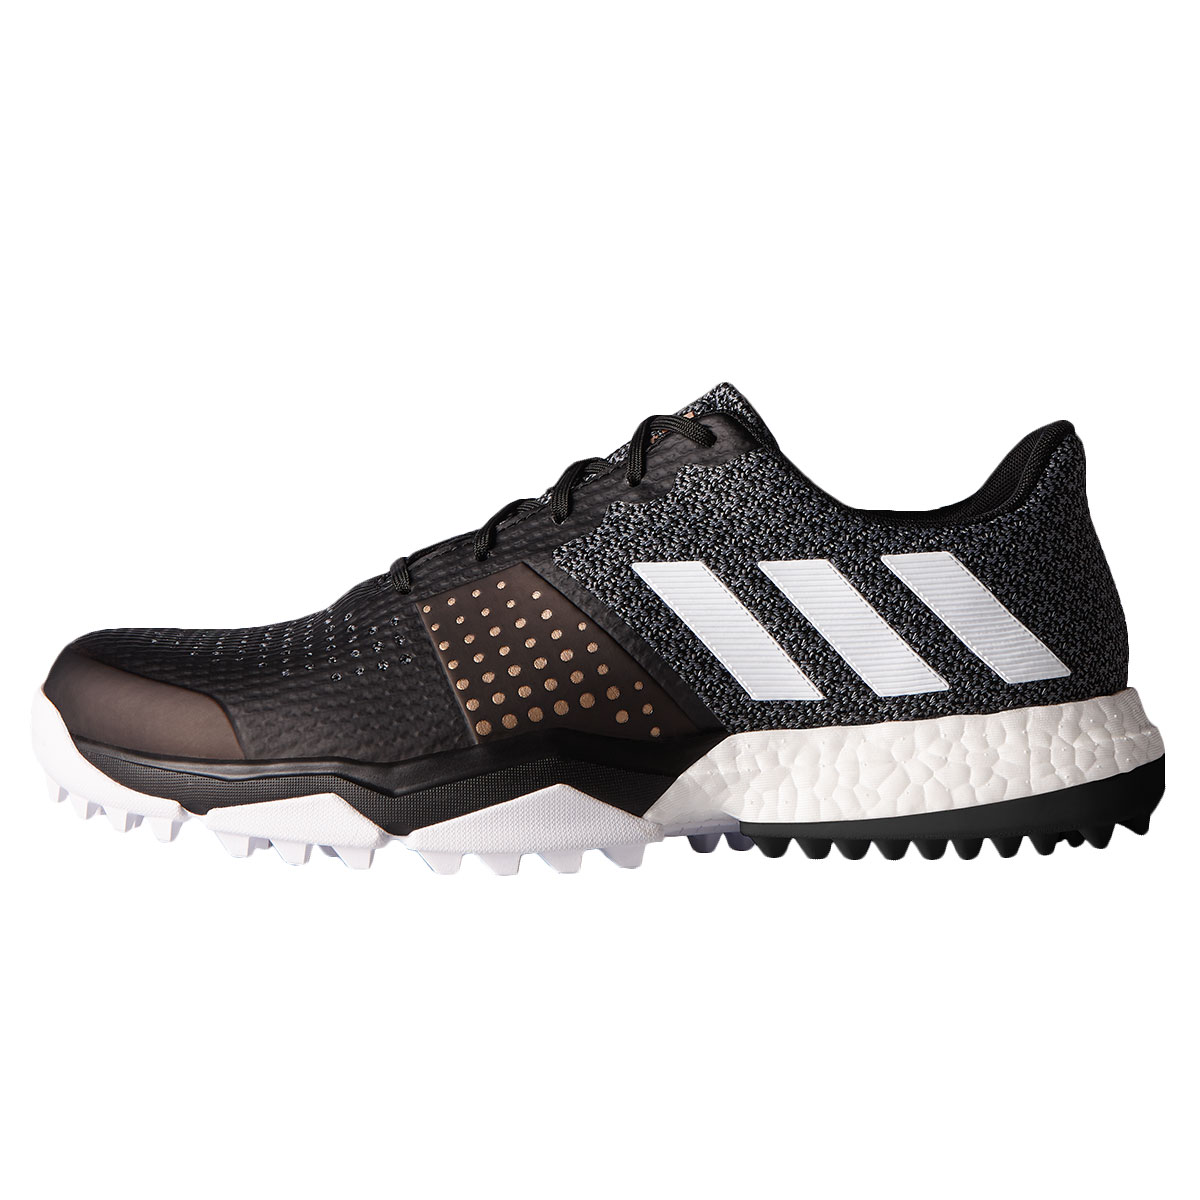 Adidas Adipower Boost Golf Shoes Mens